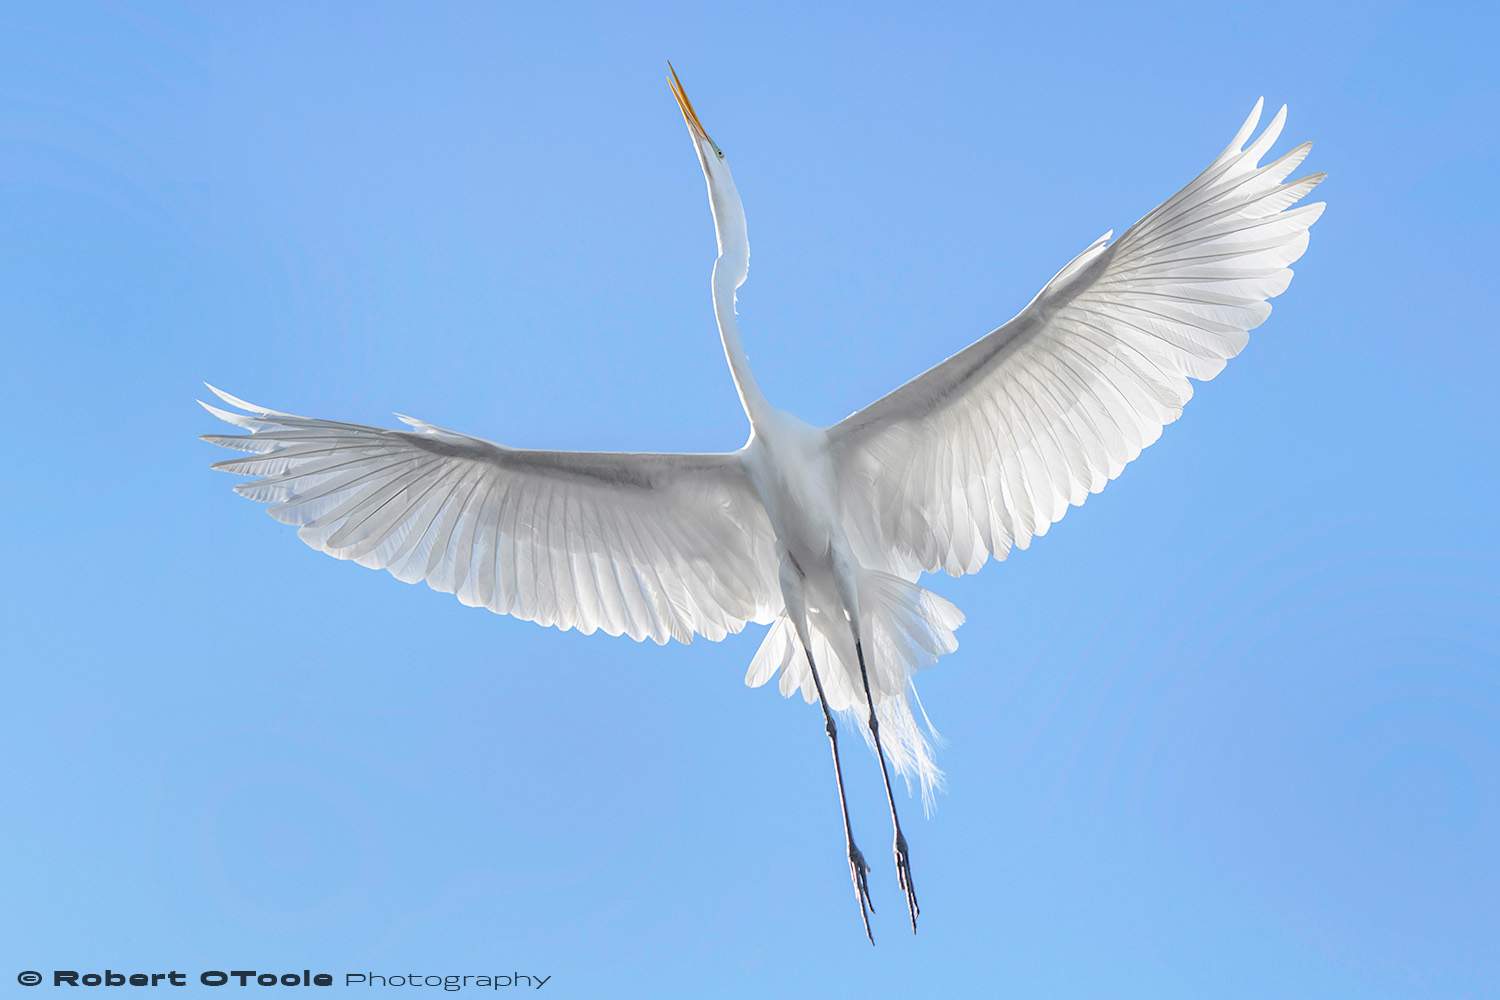 Great egret backlit flash fill landing Sigma 120-300 S @120mm Nikon D500 1/1250 f/4.5 ISO 400 manual mode SB800 flash